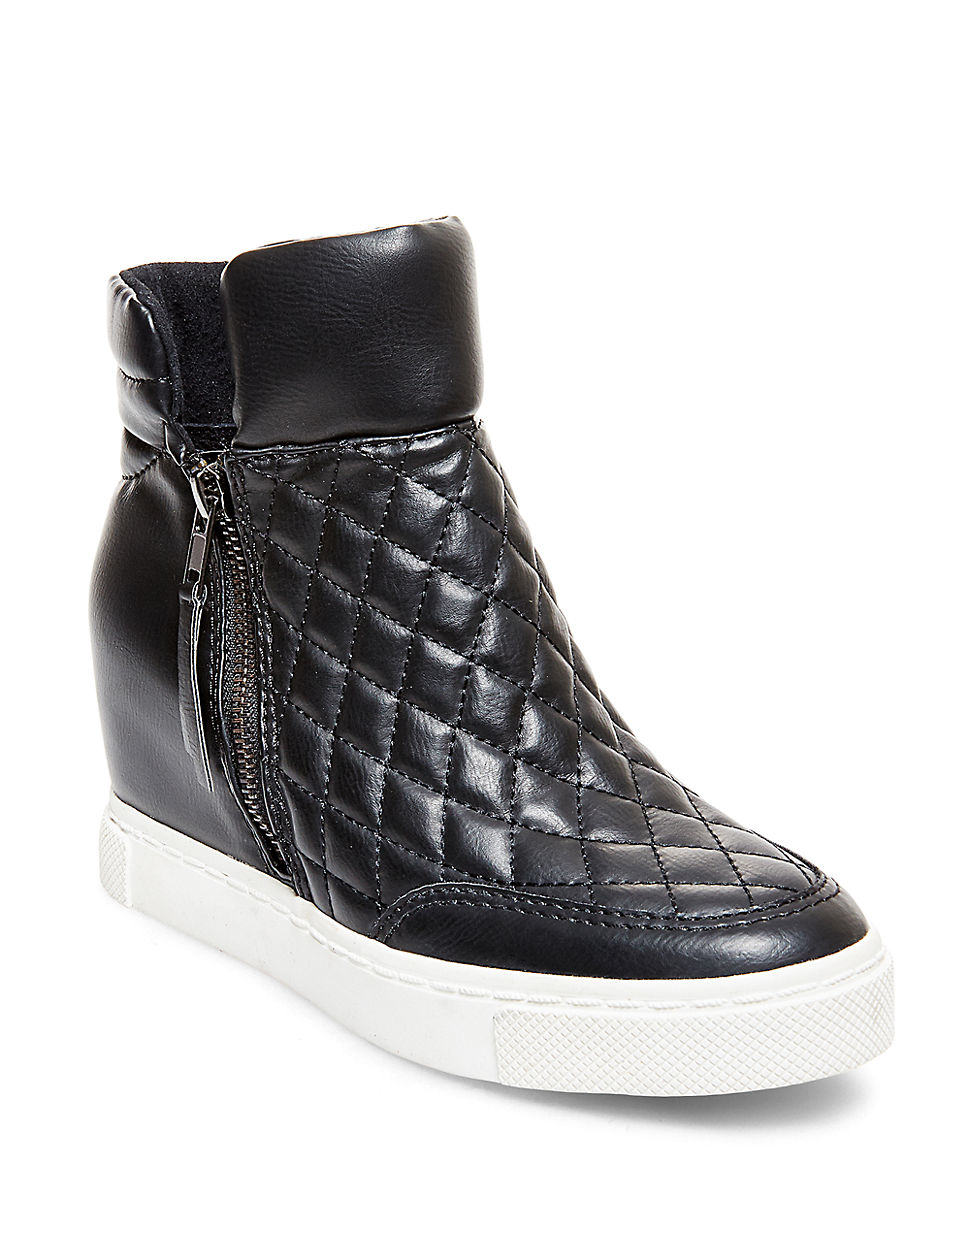 5426b7418b0 Steve Madden Black Linqs Quilted Leatherette High-top Sneakers